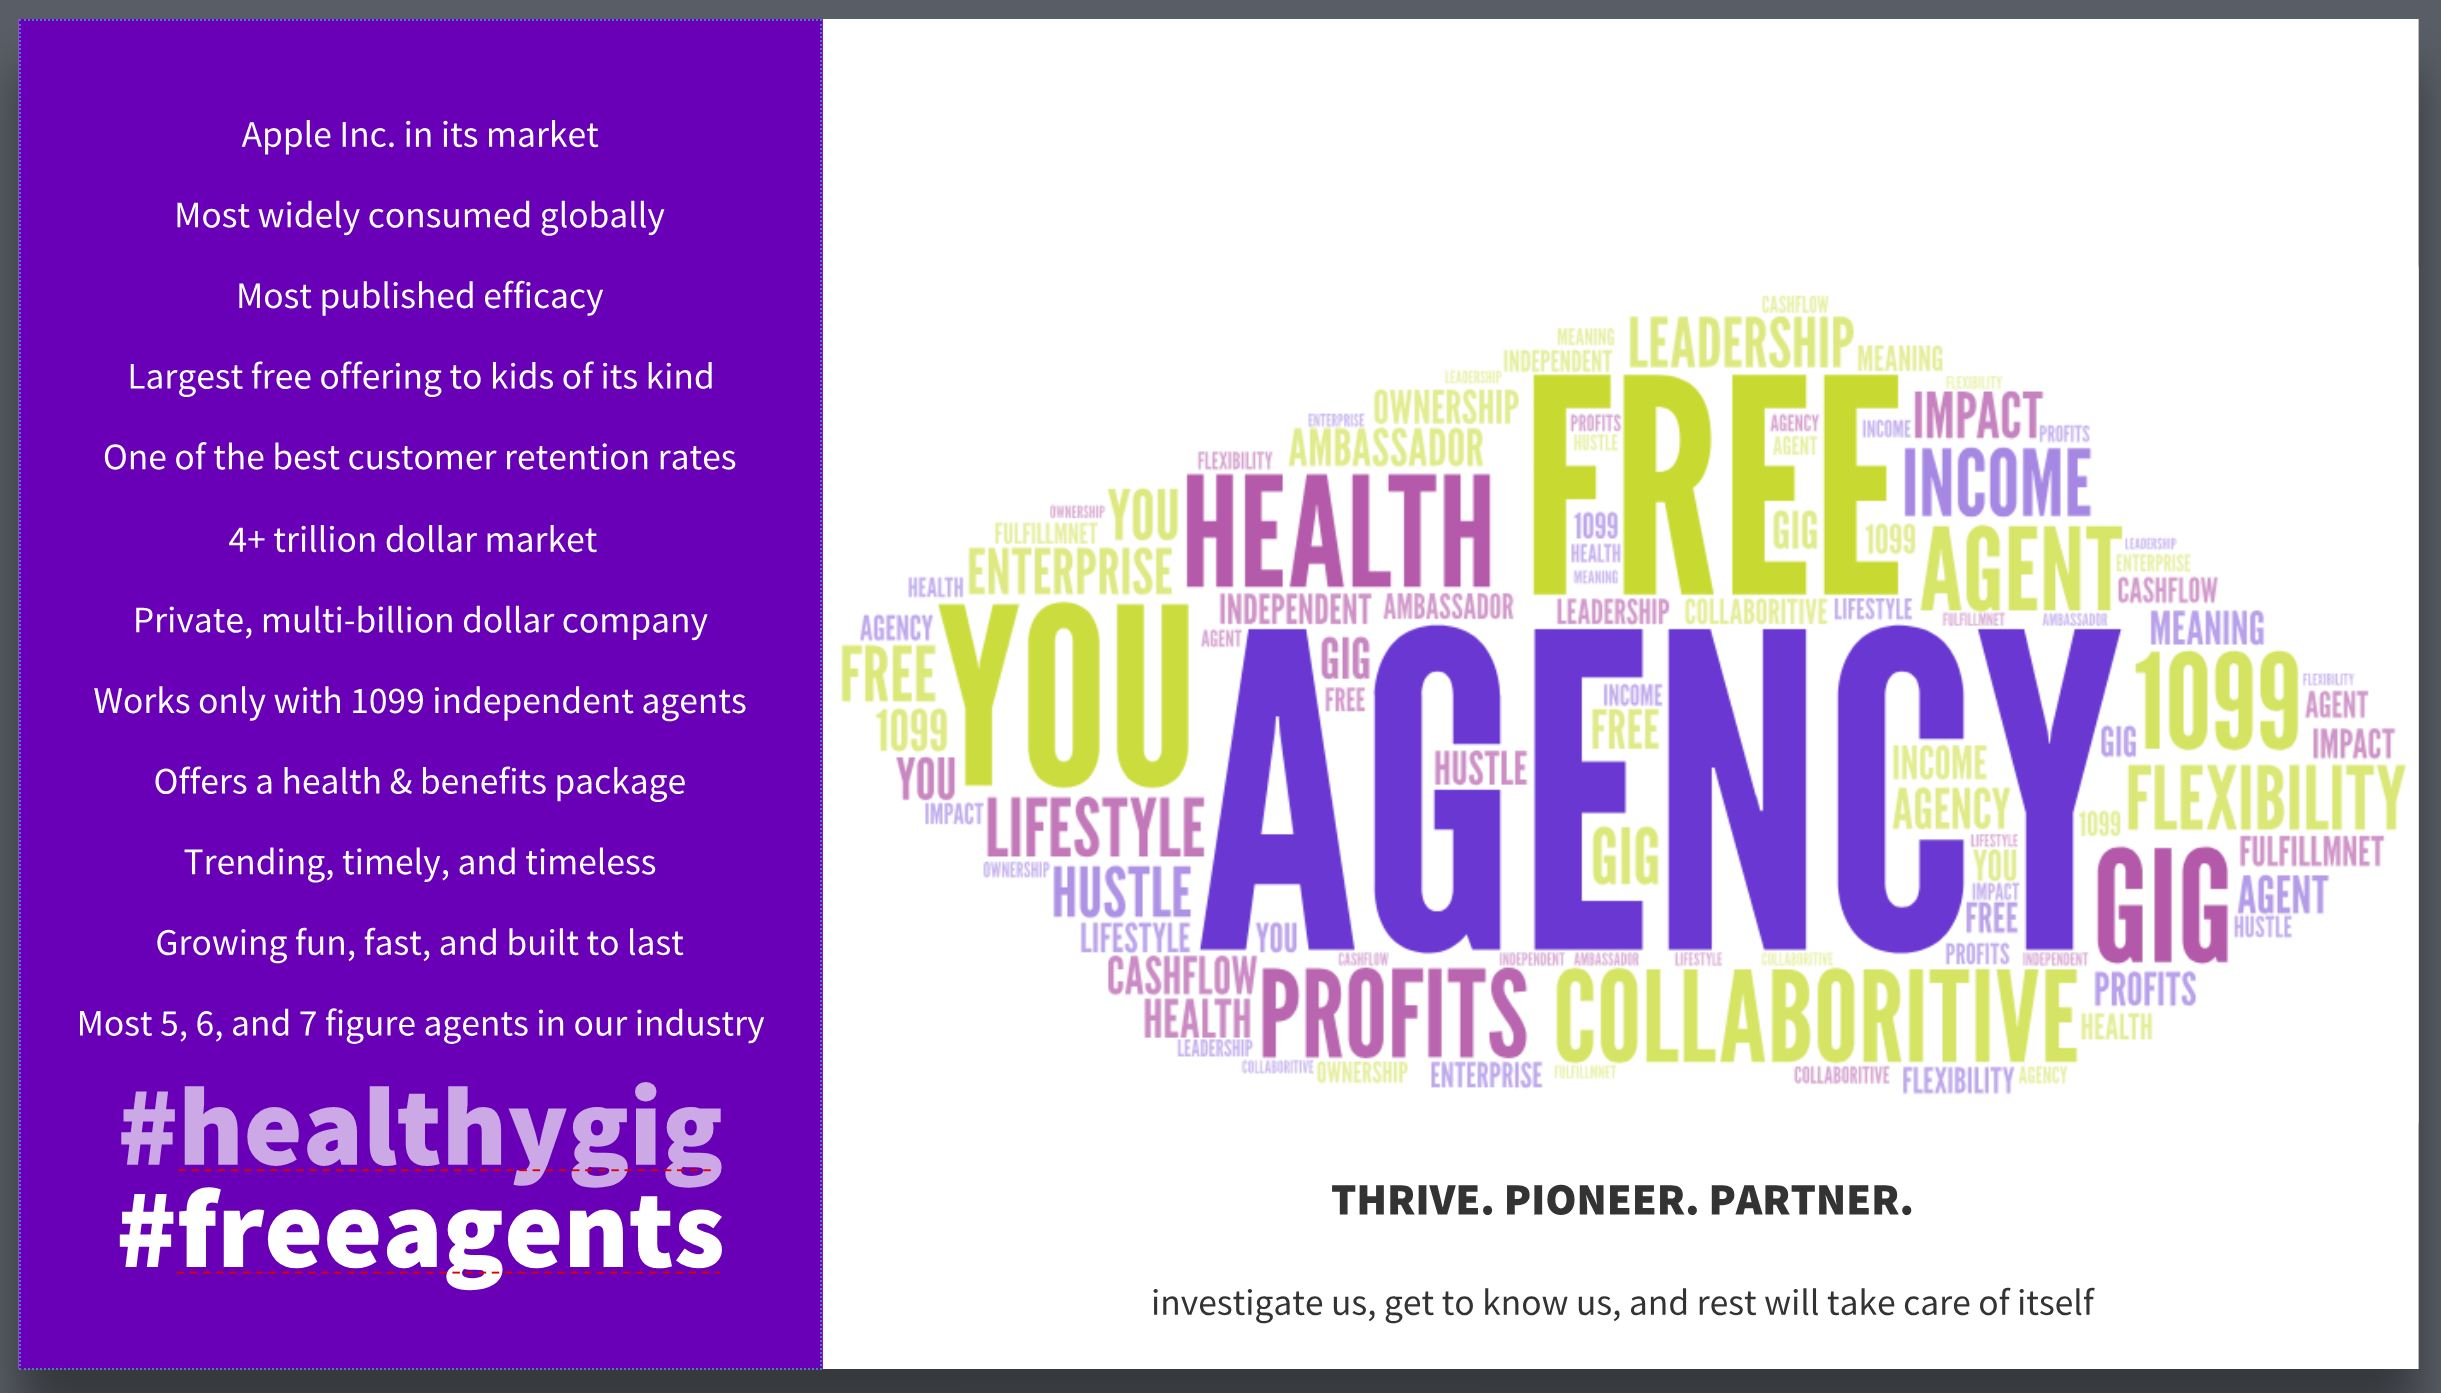 Be an ambassador, agent, or agency owner with us. #OwnIt